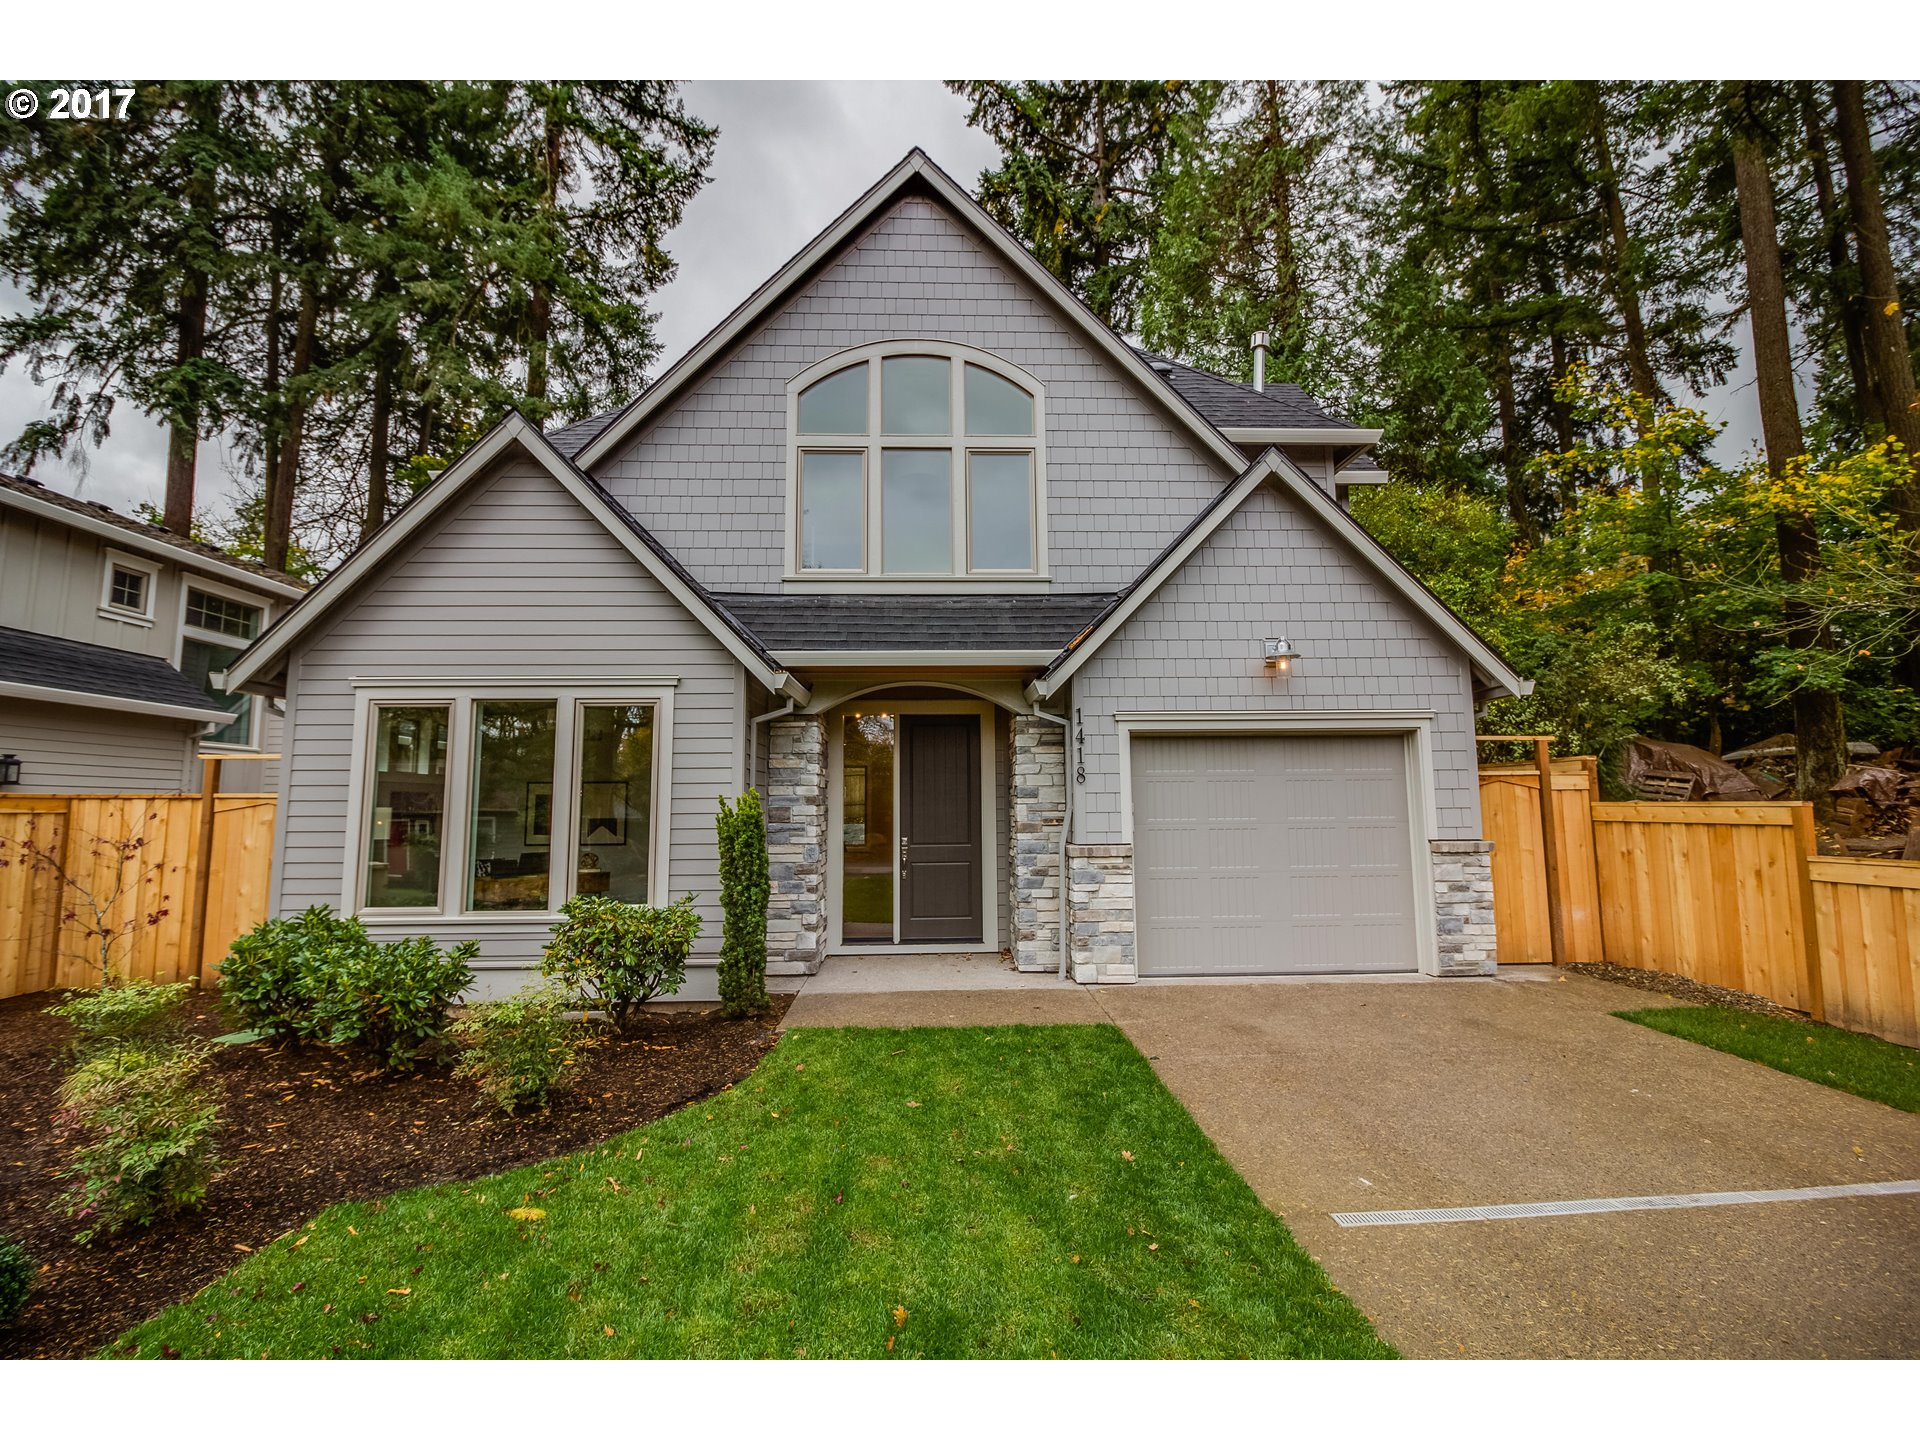 1418 Maple ST, Lake Oswego, OR 97034